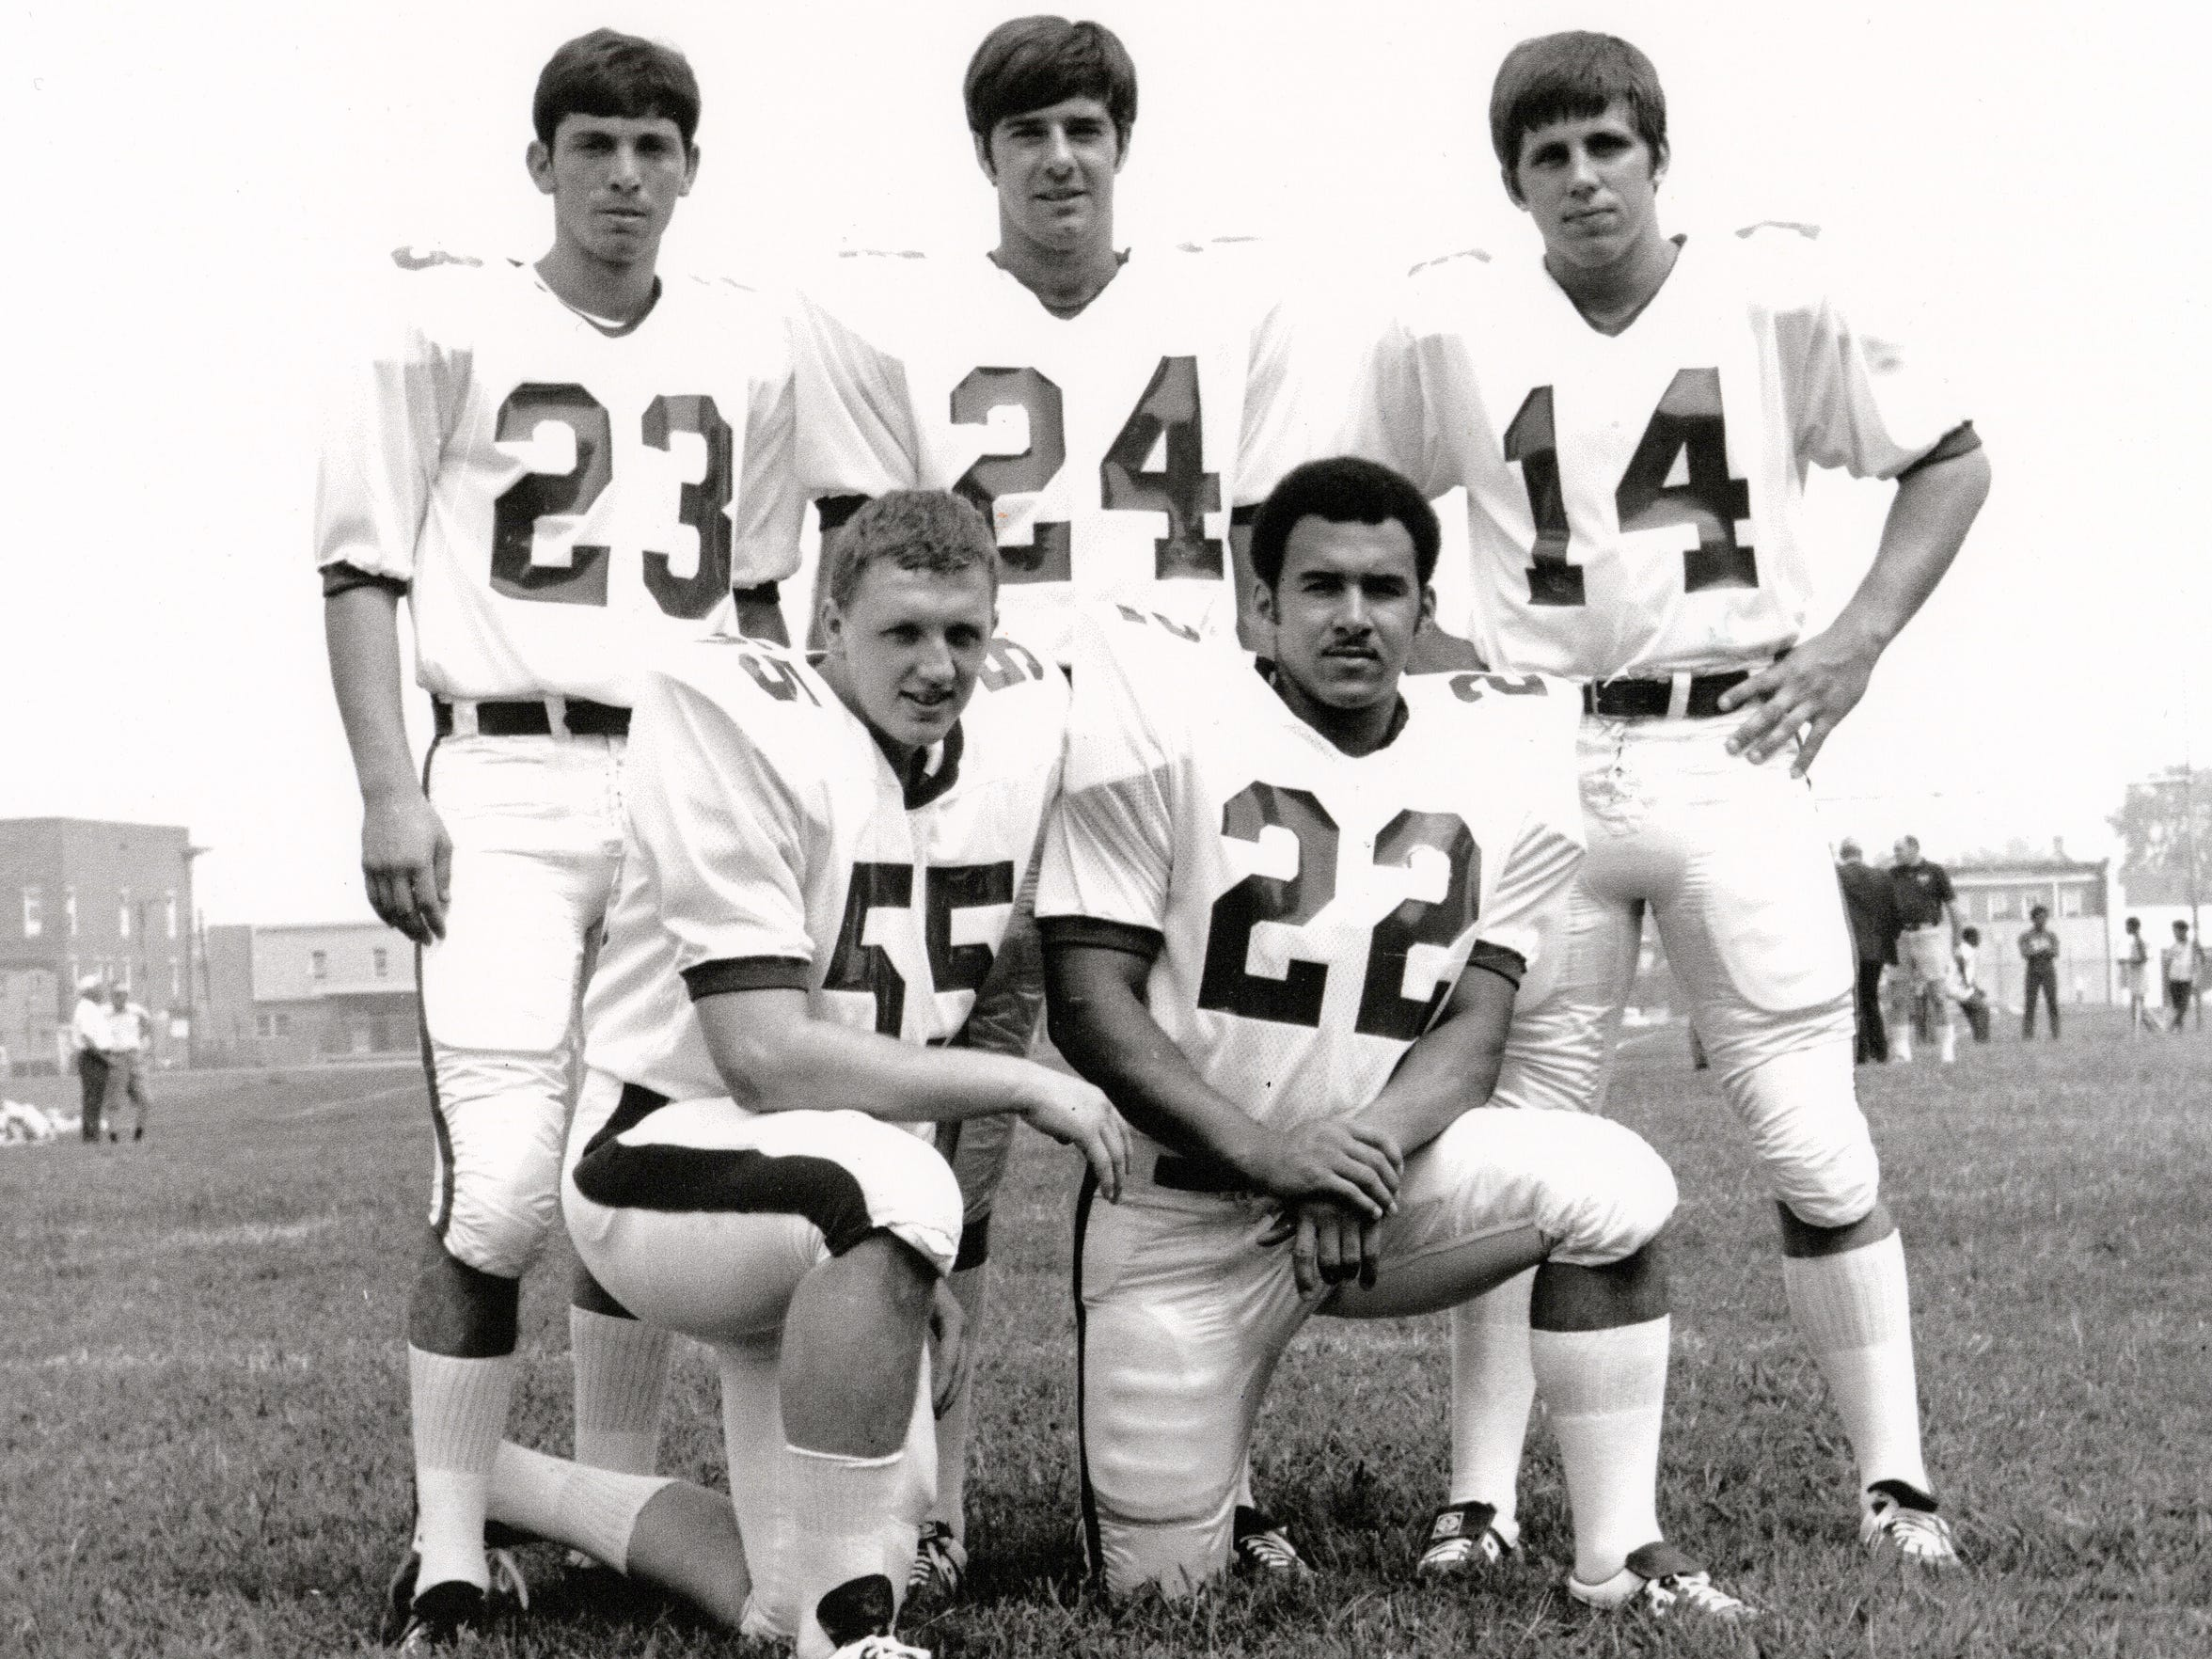 """The 1970 Marshall University football team had five players from New Jersey. Dennis Foley (55) is the only one who didn't die in the Nov. 14, 1970 plane crash. Pictured are, back row: Marcelo Lajterman (23), Kevin Gilmore (24), Ted Shoebridge (14) front row: Dennis Foley (55), Arthur """"Art"""" Harris (22)"""